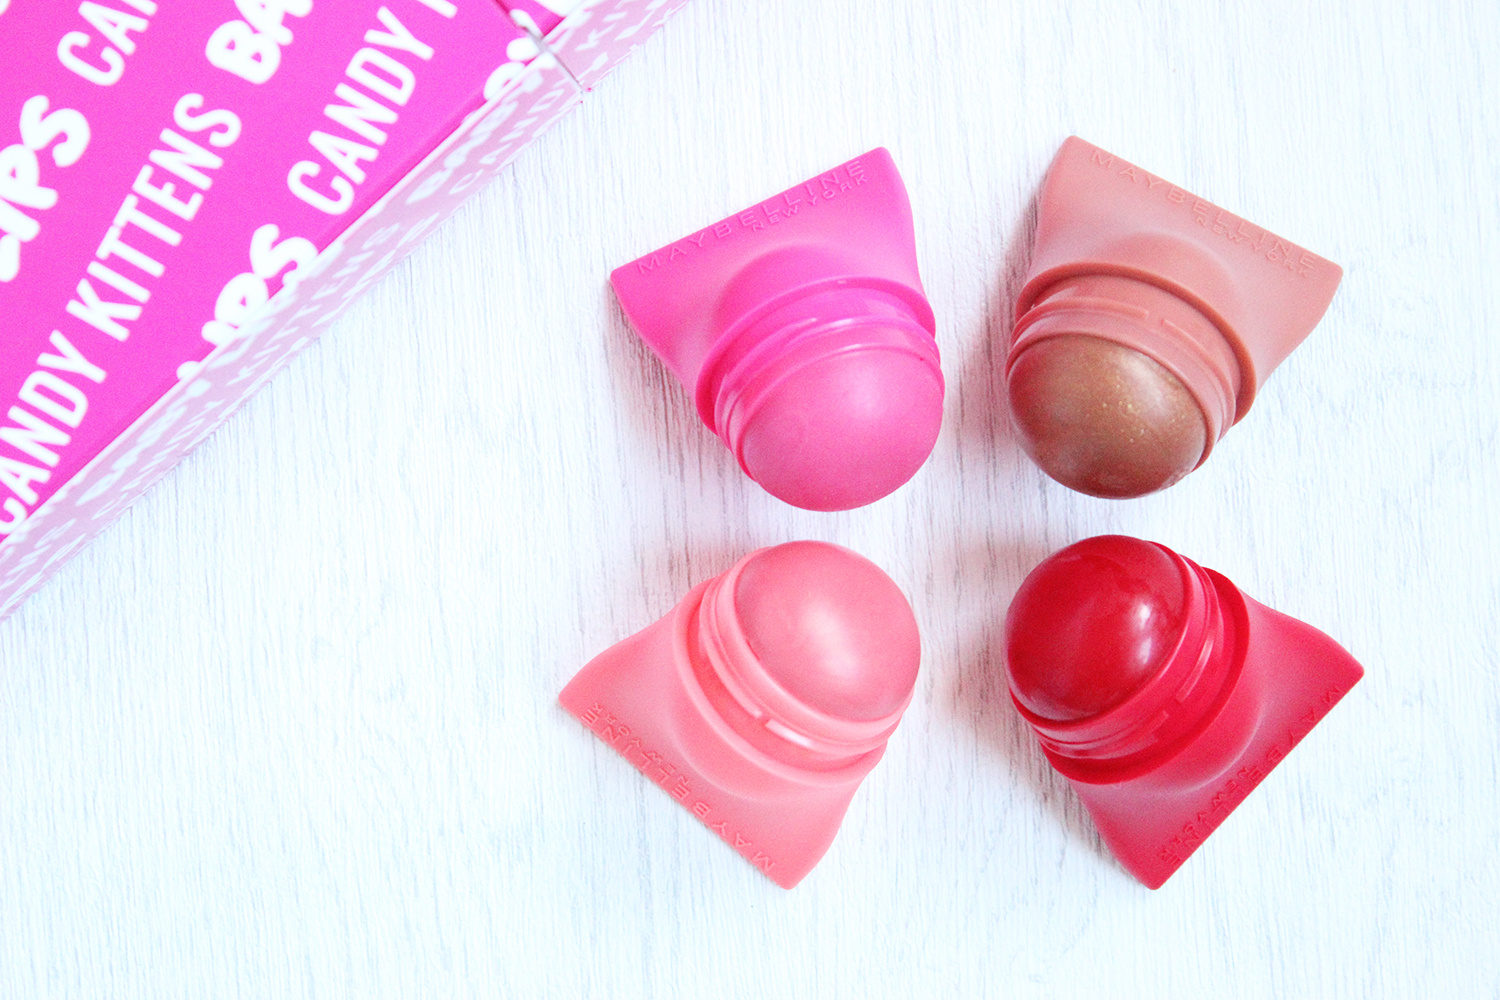 Maybelline Baby Lips Balm & Blush review